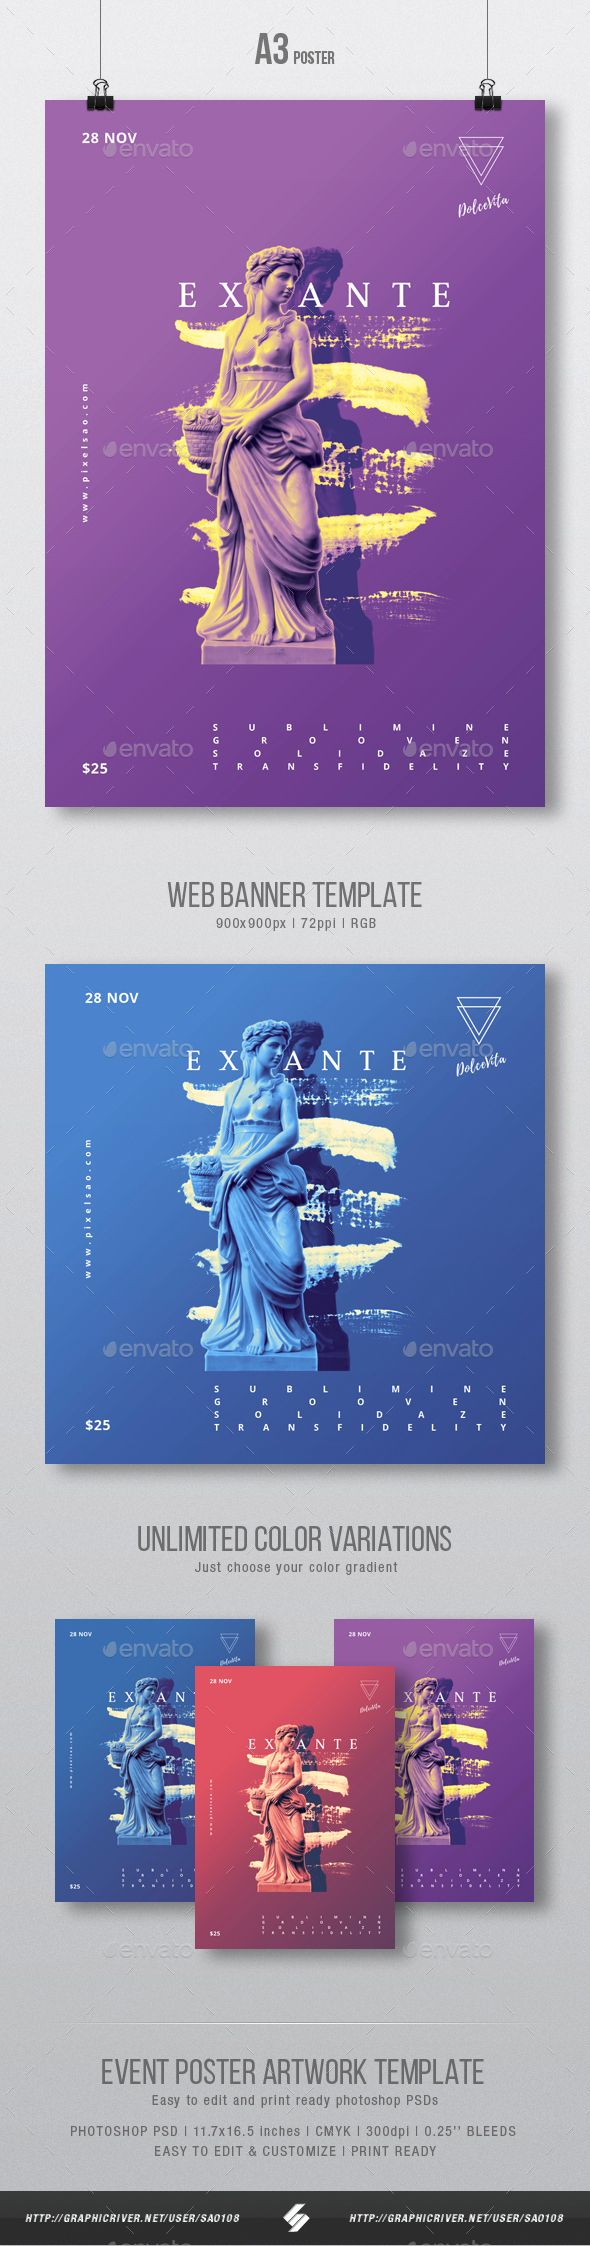 Ex Ante - Creative Party Flyer / Poster Artwork Template A3